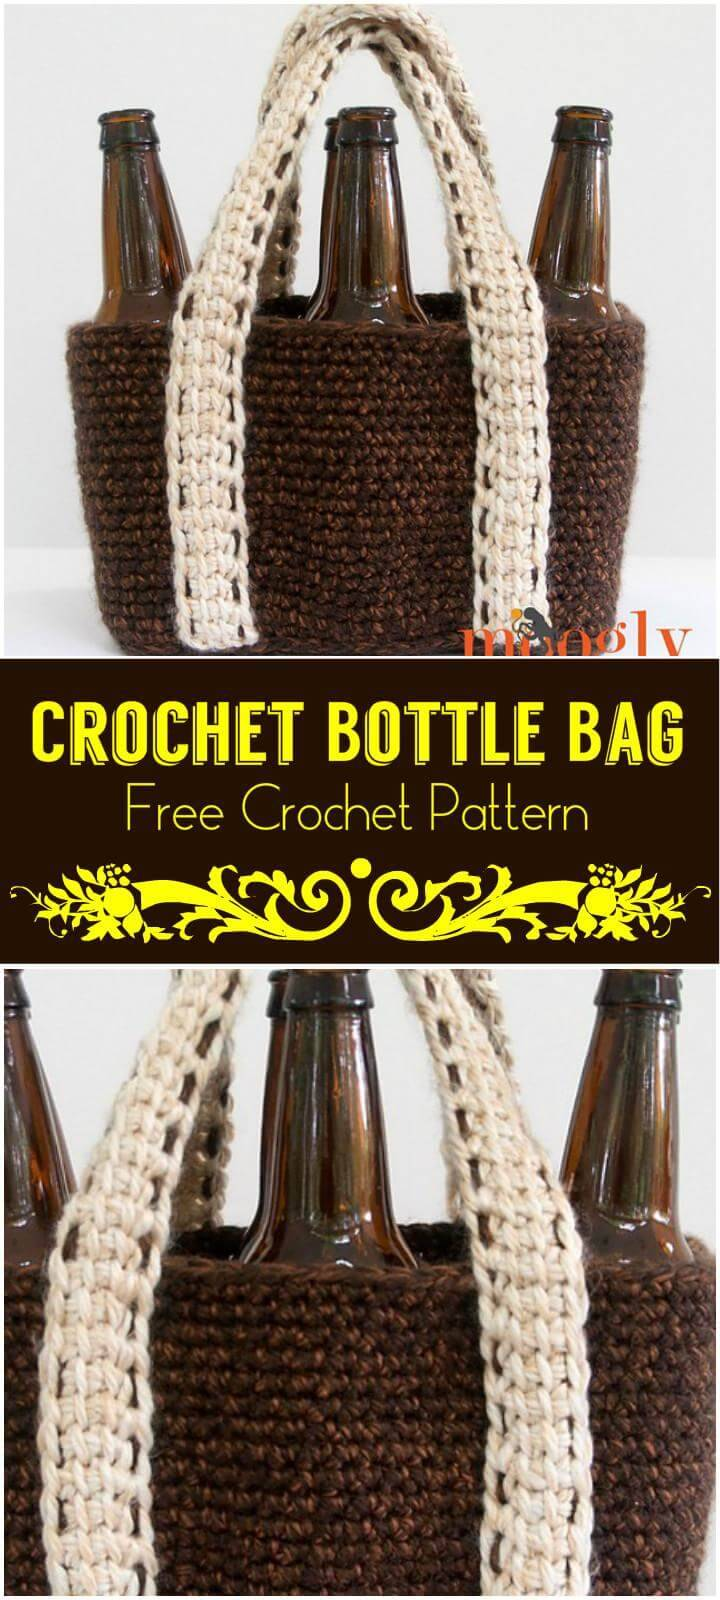 Crochet Bottle Bag Free Crochet Pattern